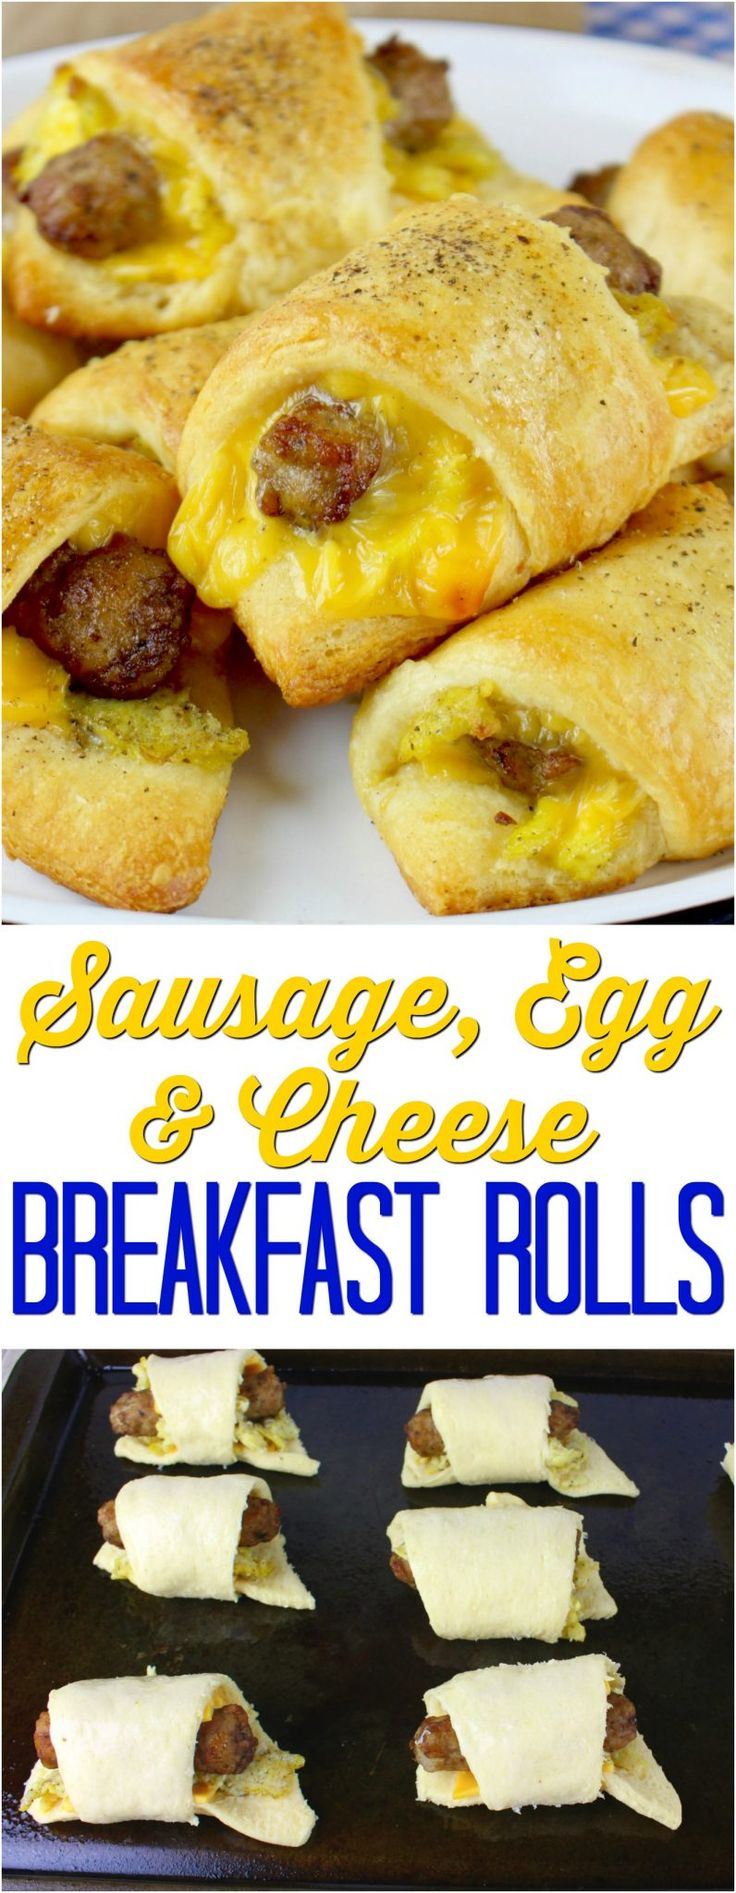 Sausage, Egg, & Cheese Breakfast Rolls from The Country Cook